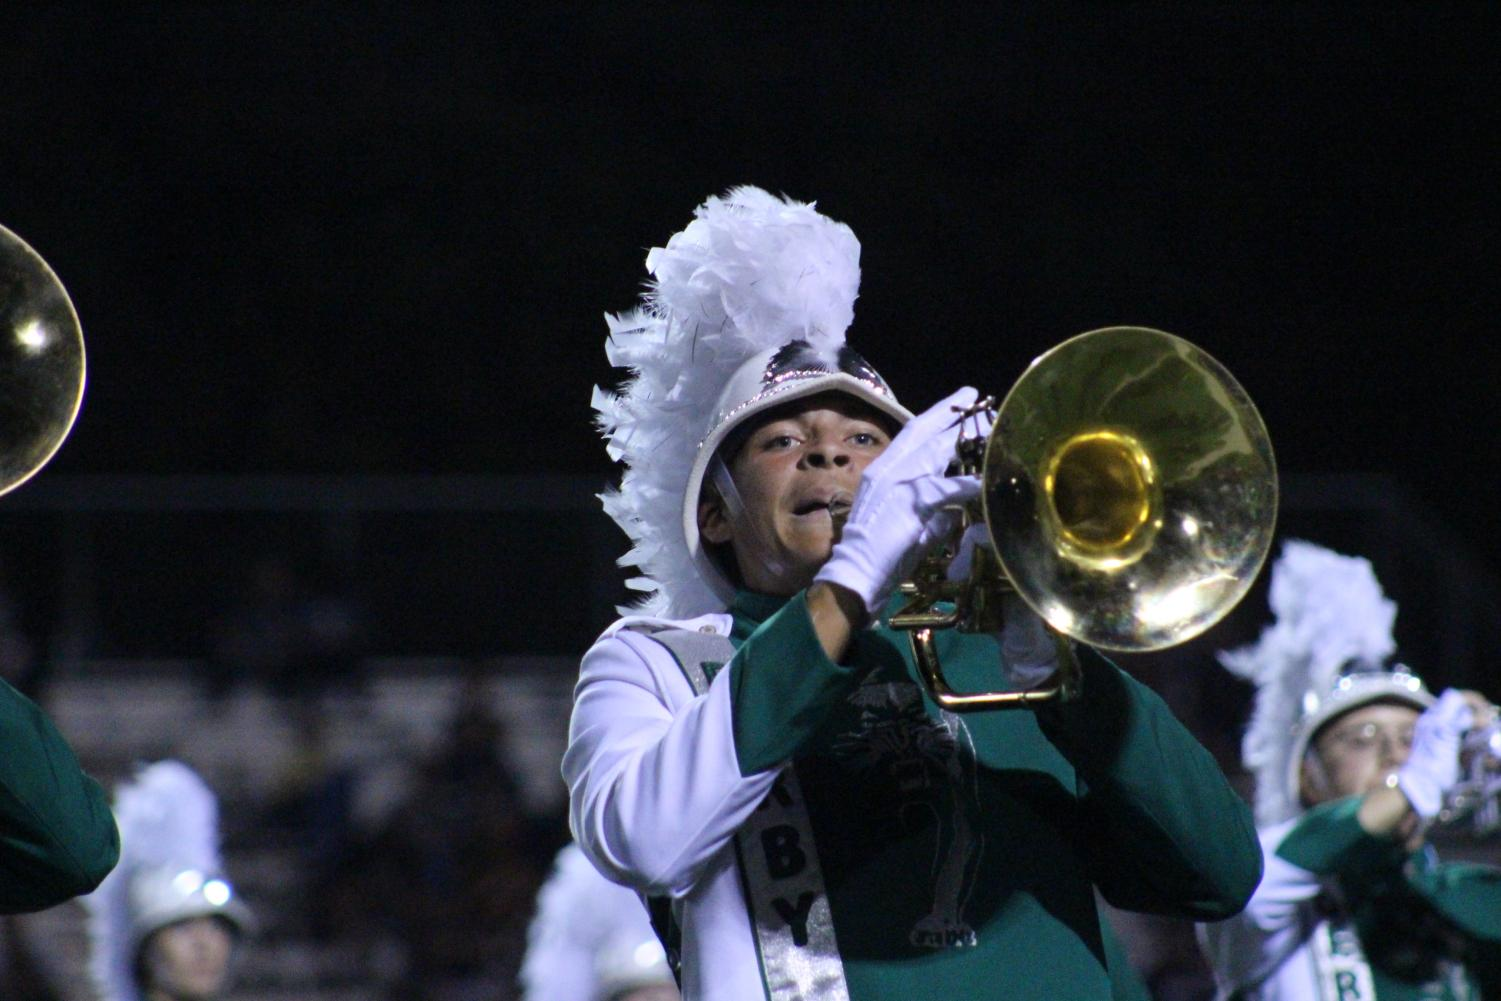 A+trumpet+player+takes+a+breath+while+playing+during+halftime